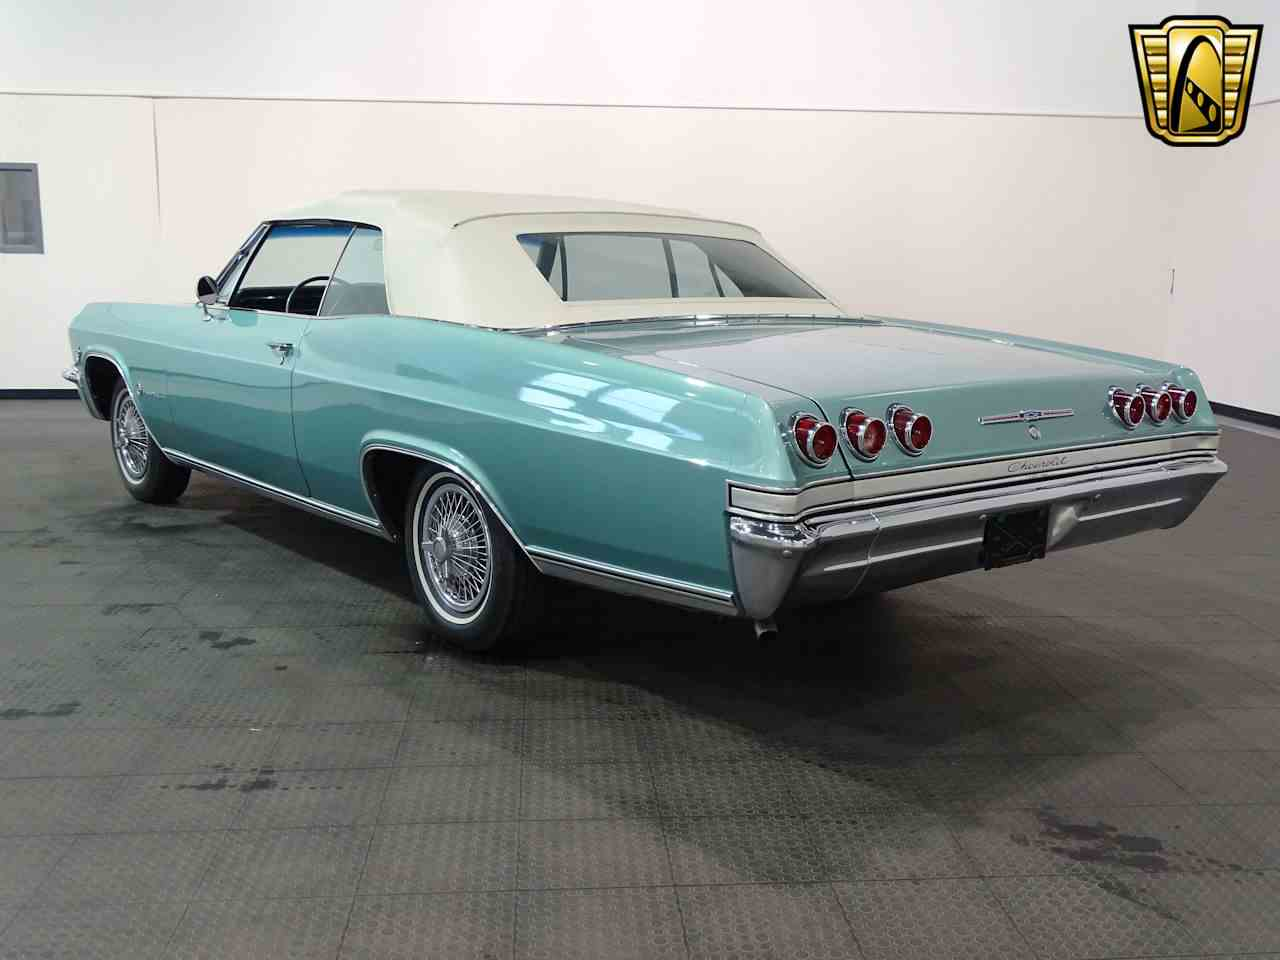 Large Picture of Classic 1965 Chevrolet Impala located in Indiana - $34,995.00 Offered by Gateway Classic Cars - Indianapolis - L5YV